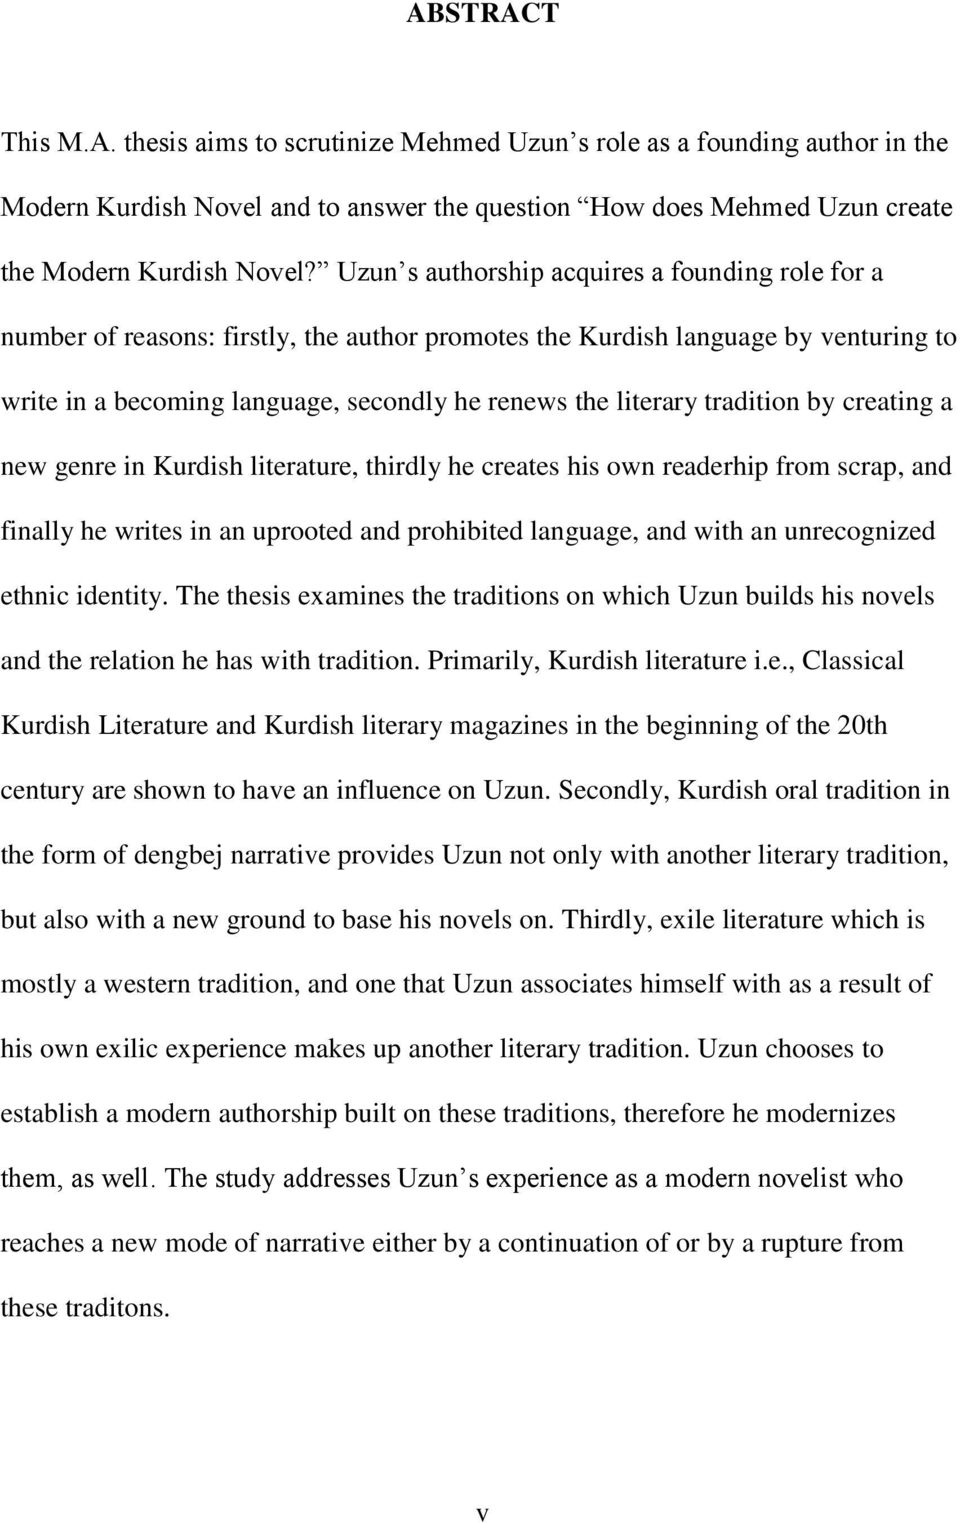 tradition by creating a new genre in Kurdish literature, thirdly he creates his own readerhip from scrap, and finally he writes in an uprooted and prohibited language, and with an unrecognized ethnic